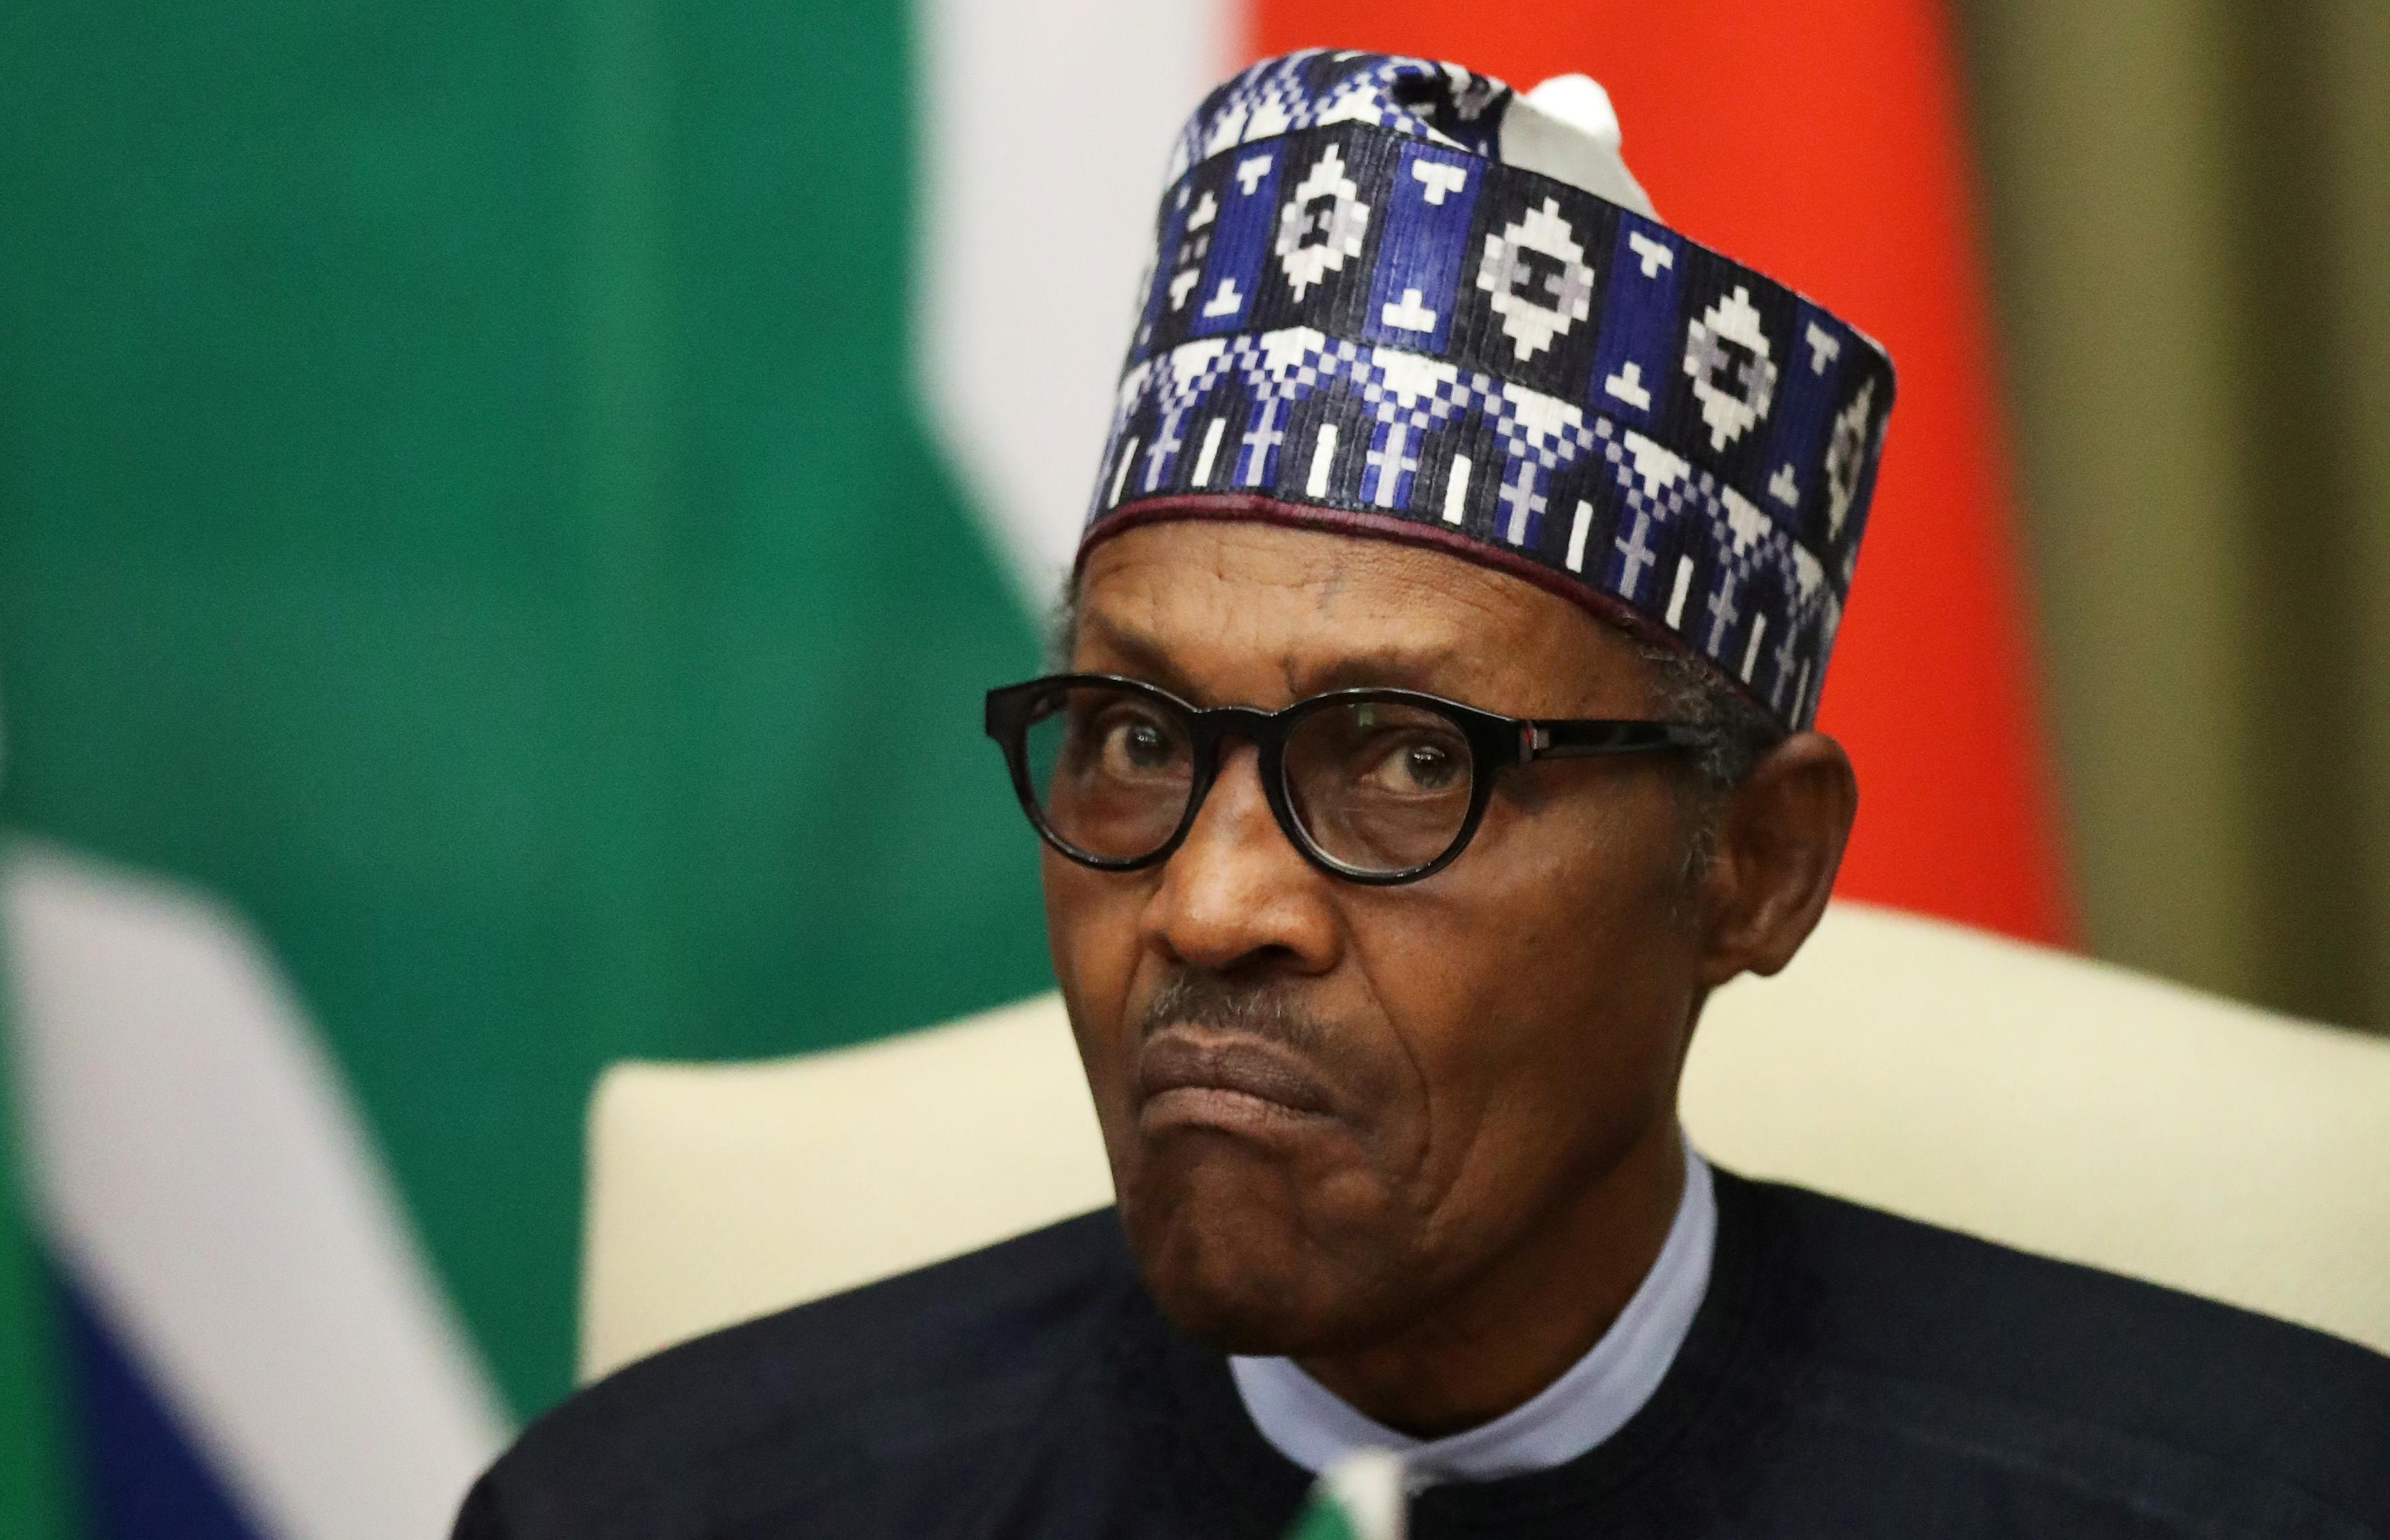 Nigeria looks to sign military cooperation deal with Russia this month